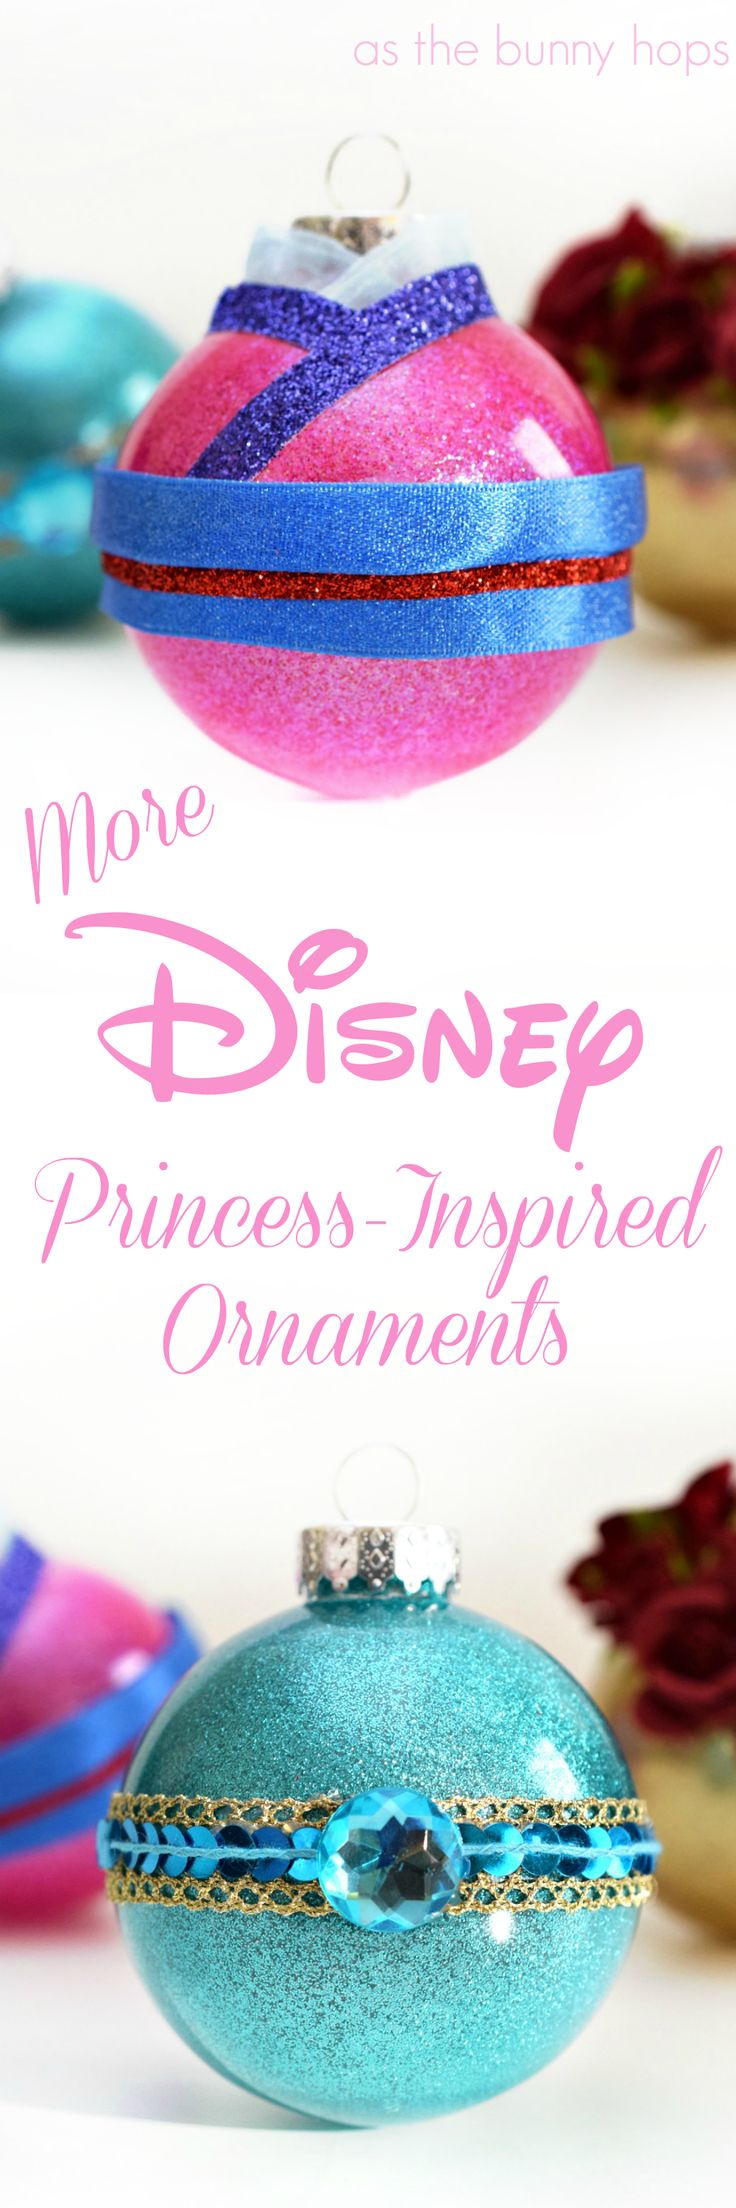 Disney Crafts Project | Make your own DIY Disney Princess-Inspired Ornaments | Mulan, Jasmine and Belle!